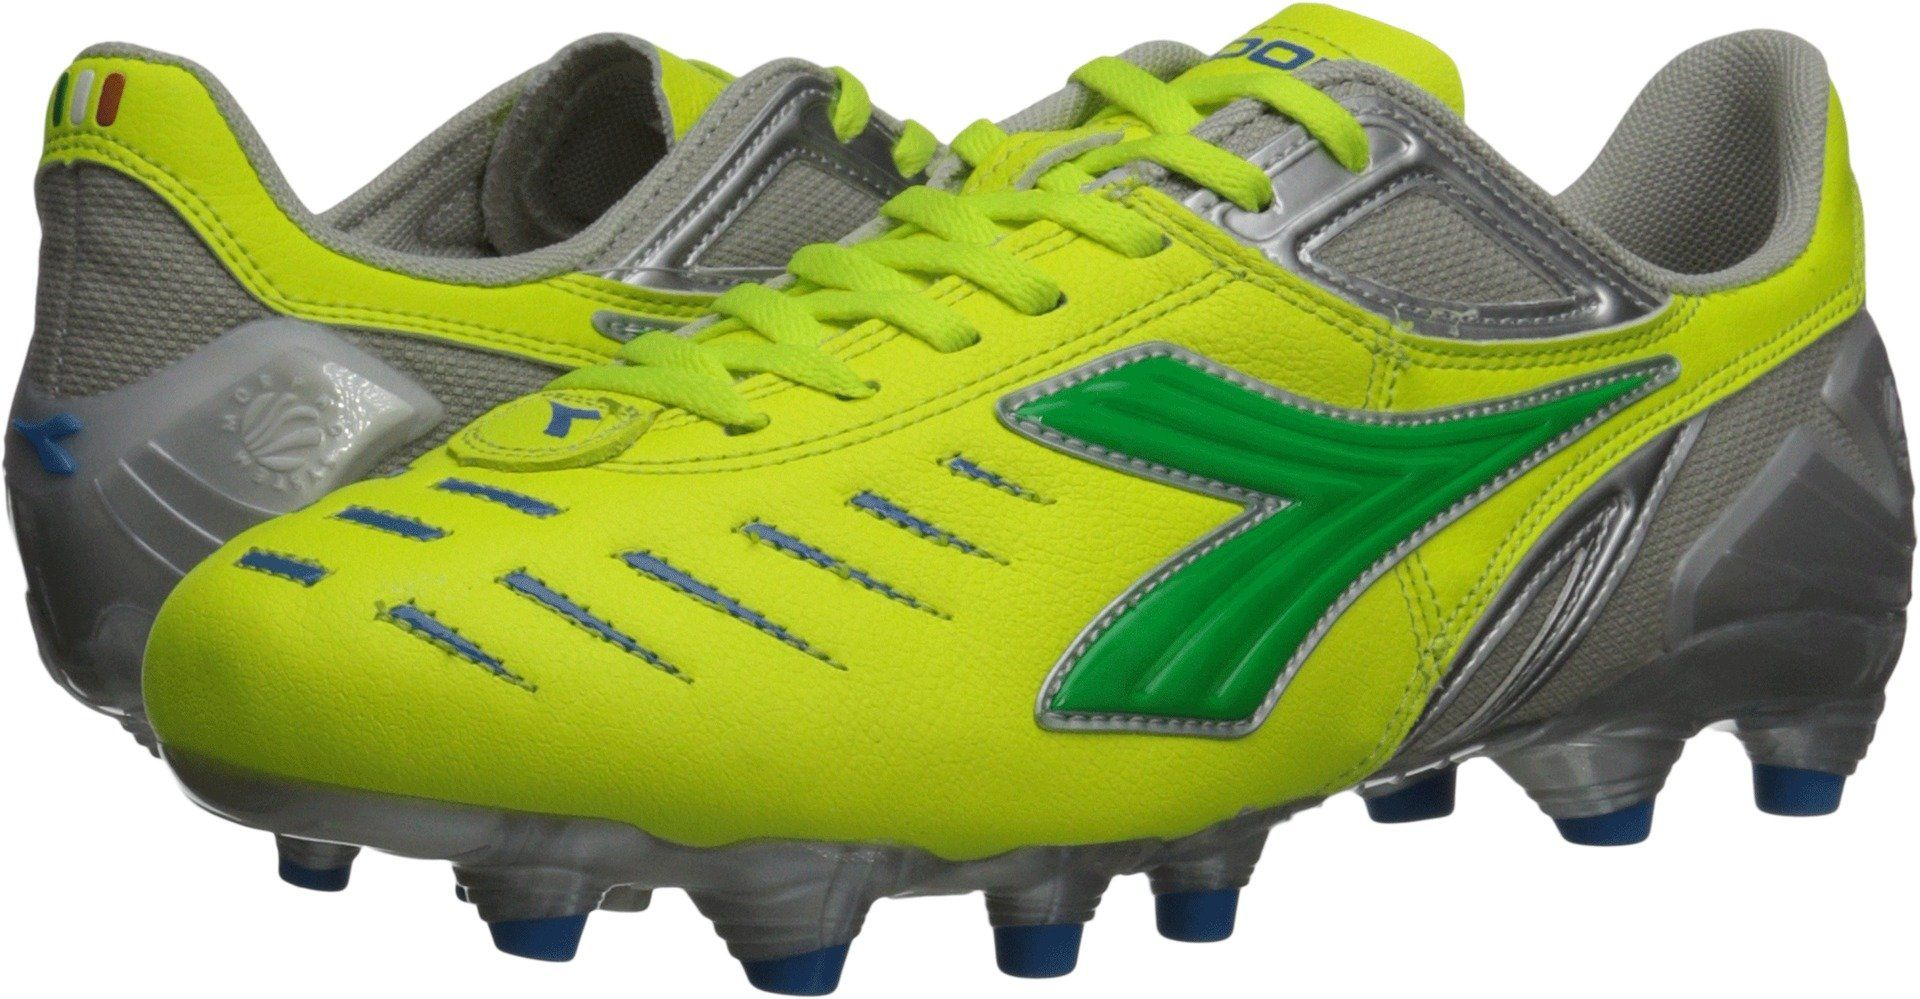 1205670a7 Diadora Womens Maracana L Soccer Cleat Shoes Yellow Flou/Lime/Royal 9 M US  -- More info could be found at the image url. (This is an affiliate link) #  ...